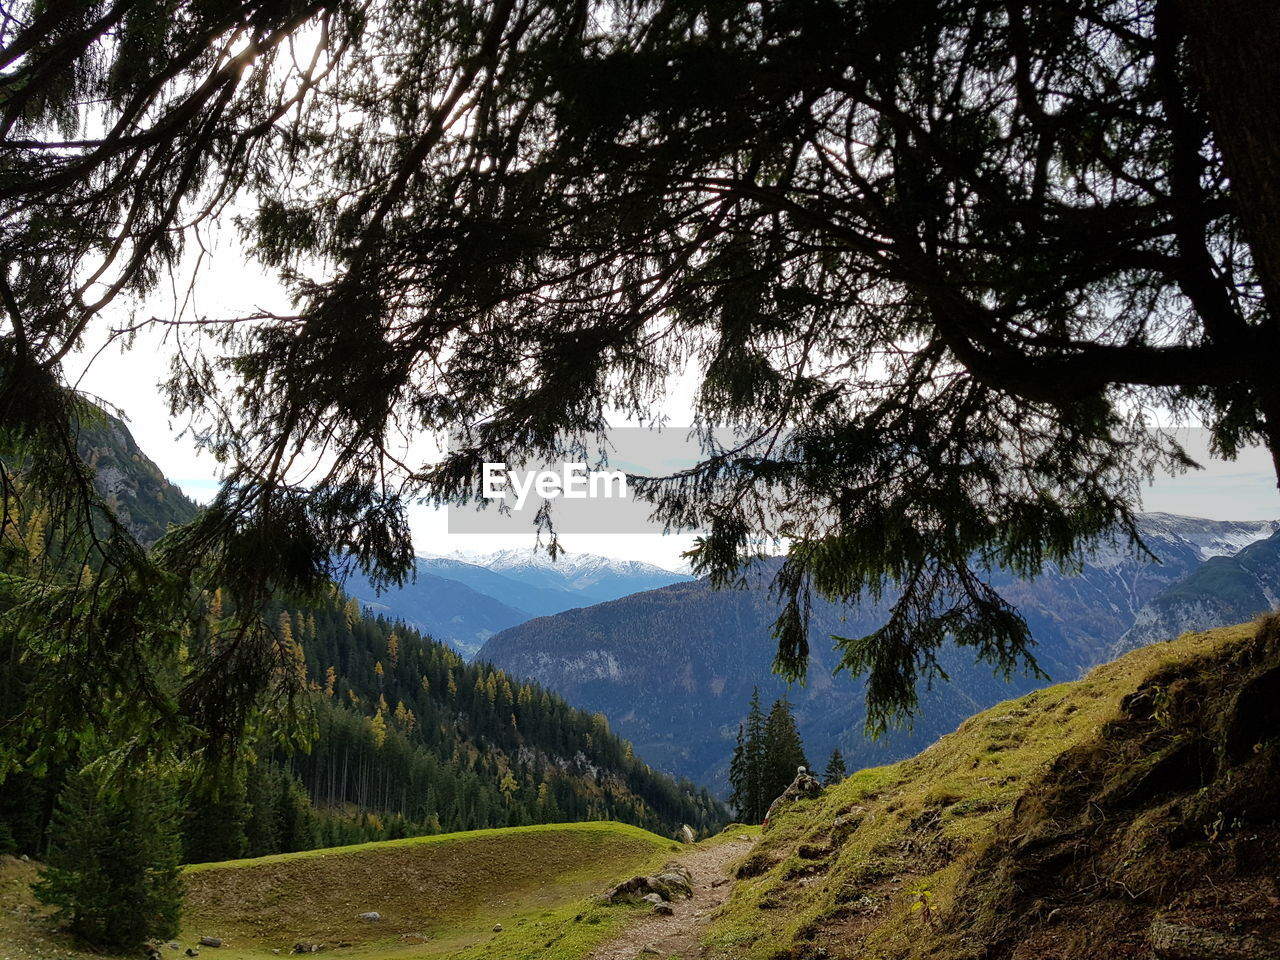 tree, mountain, plant, tranquility, landscape, sky, tranquil scene, nature, scenics - nature, beauty in nature, environment, land, mountain range, non-urban scene, growth, no people, day, green color, idyllic, grass, outdoors, mountain peak